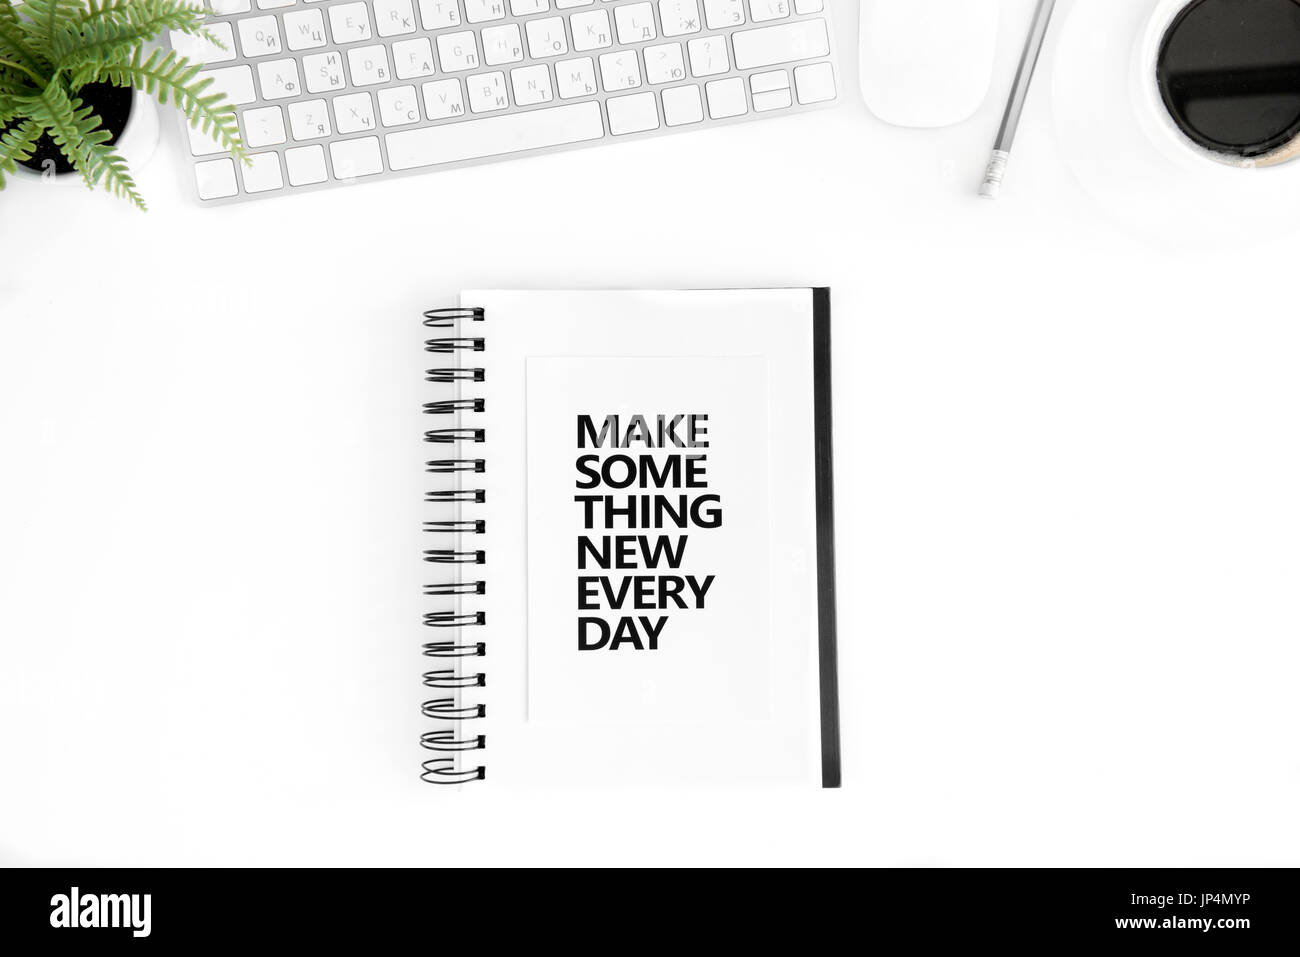 top view of make something new every day motivational quote in diary, computer mouse and keyboard isolated on white - Stock Image